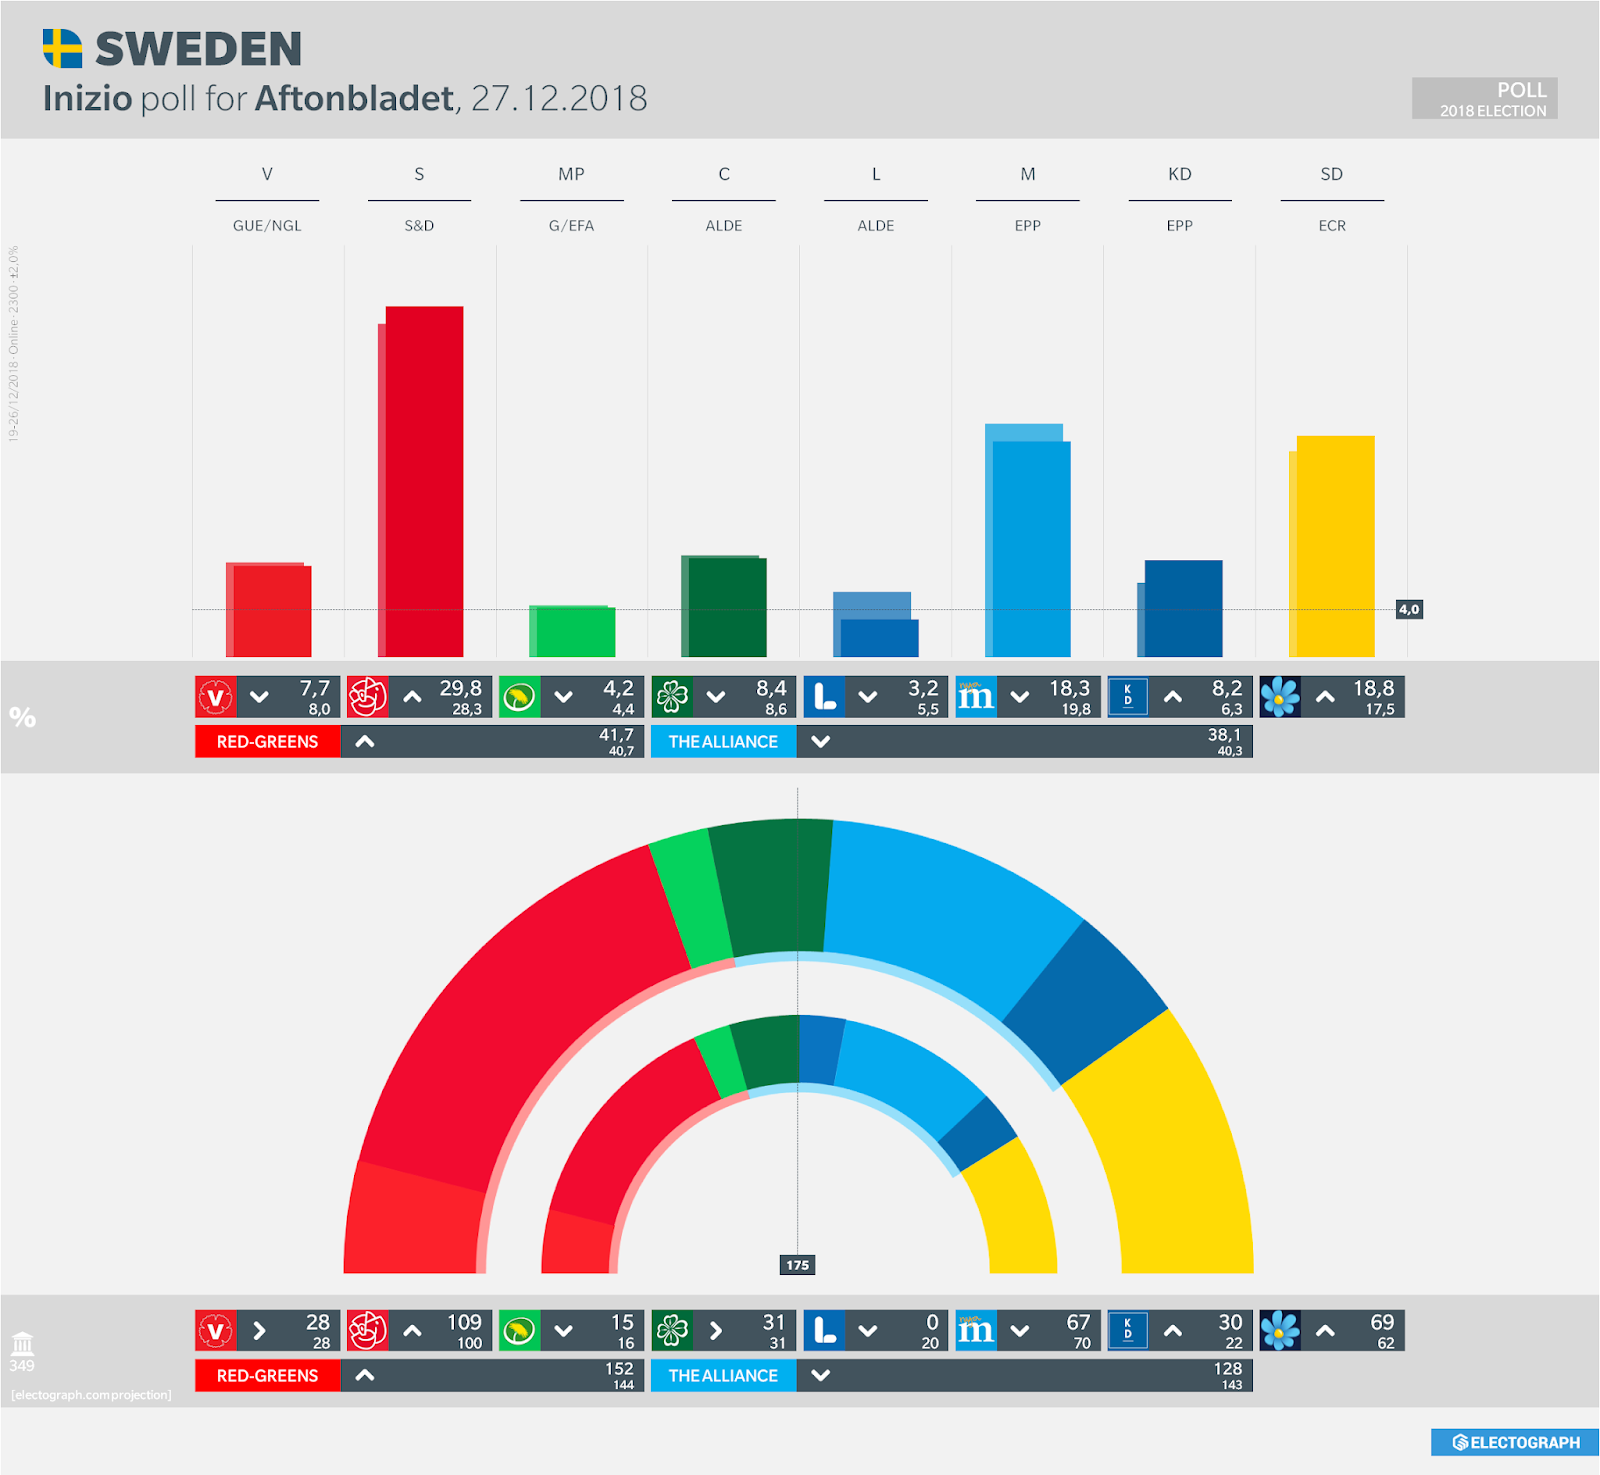 SWEDEN: Inizio poll chart for Aftonbladet, 27 December 2018